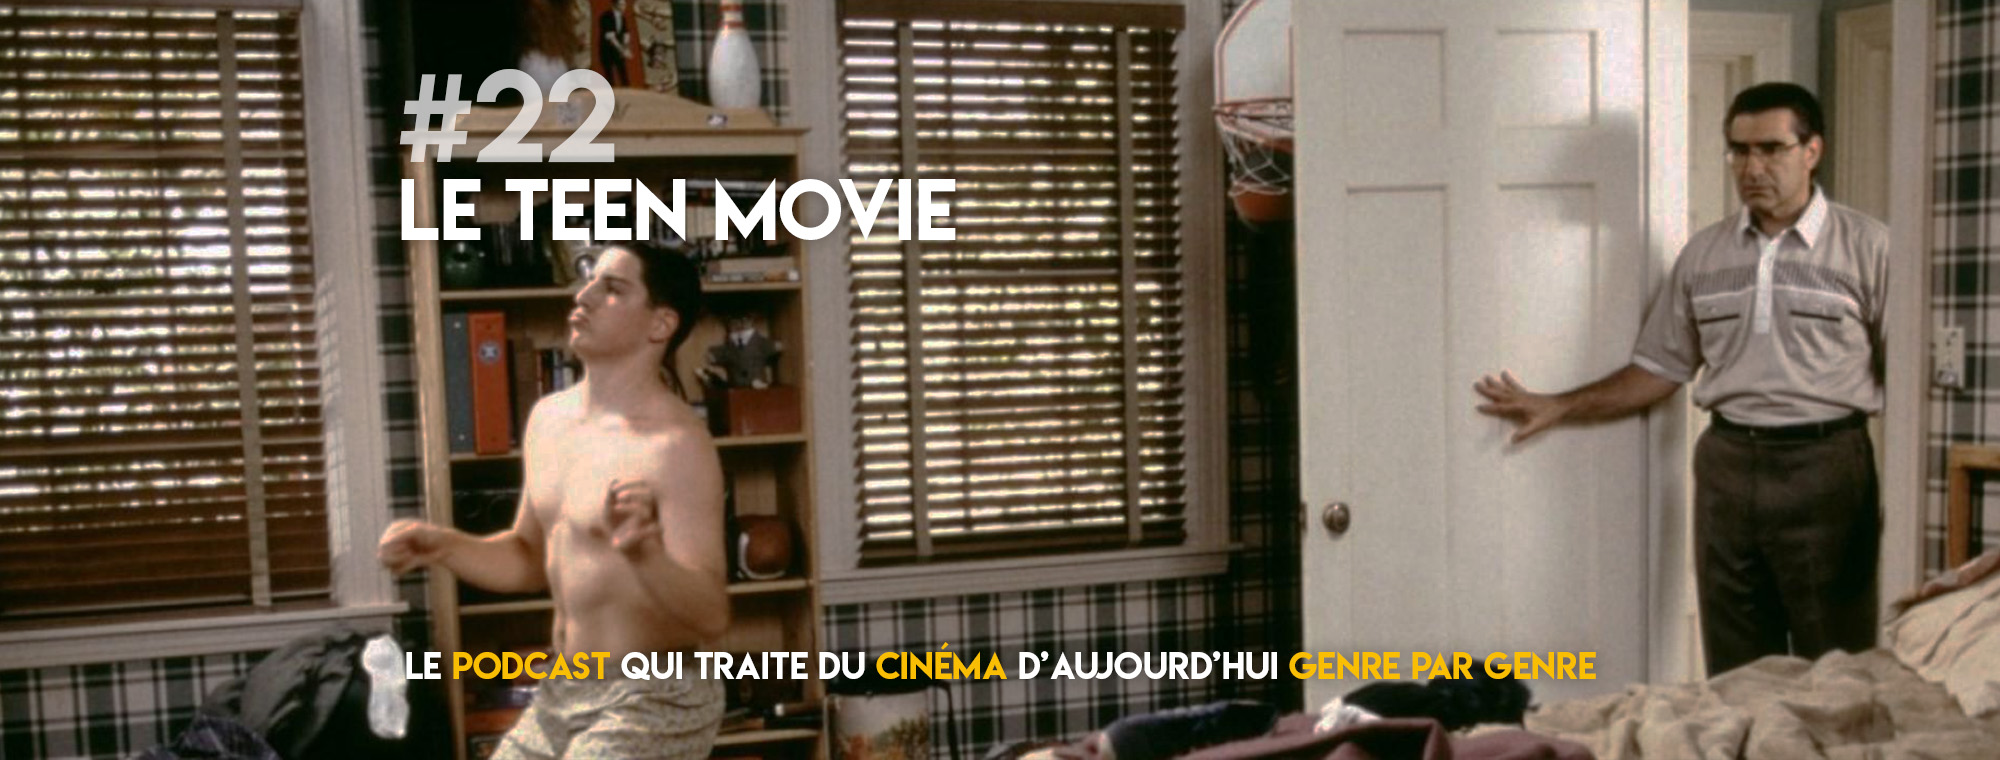 Parlons Péloches - #22 Le teen movie